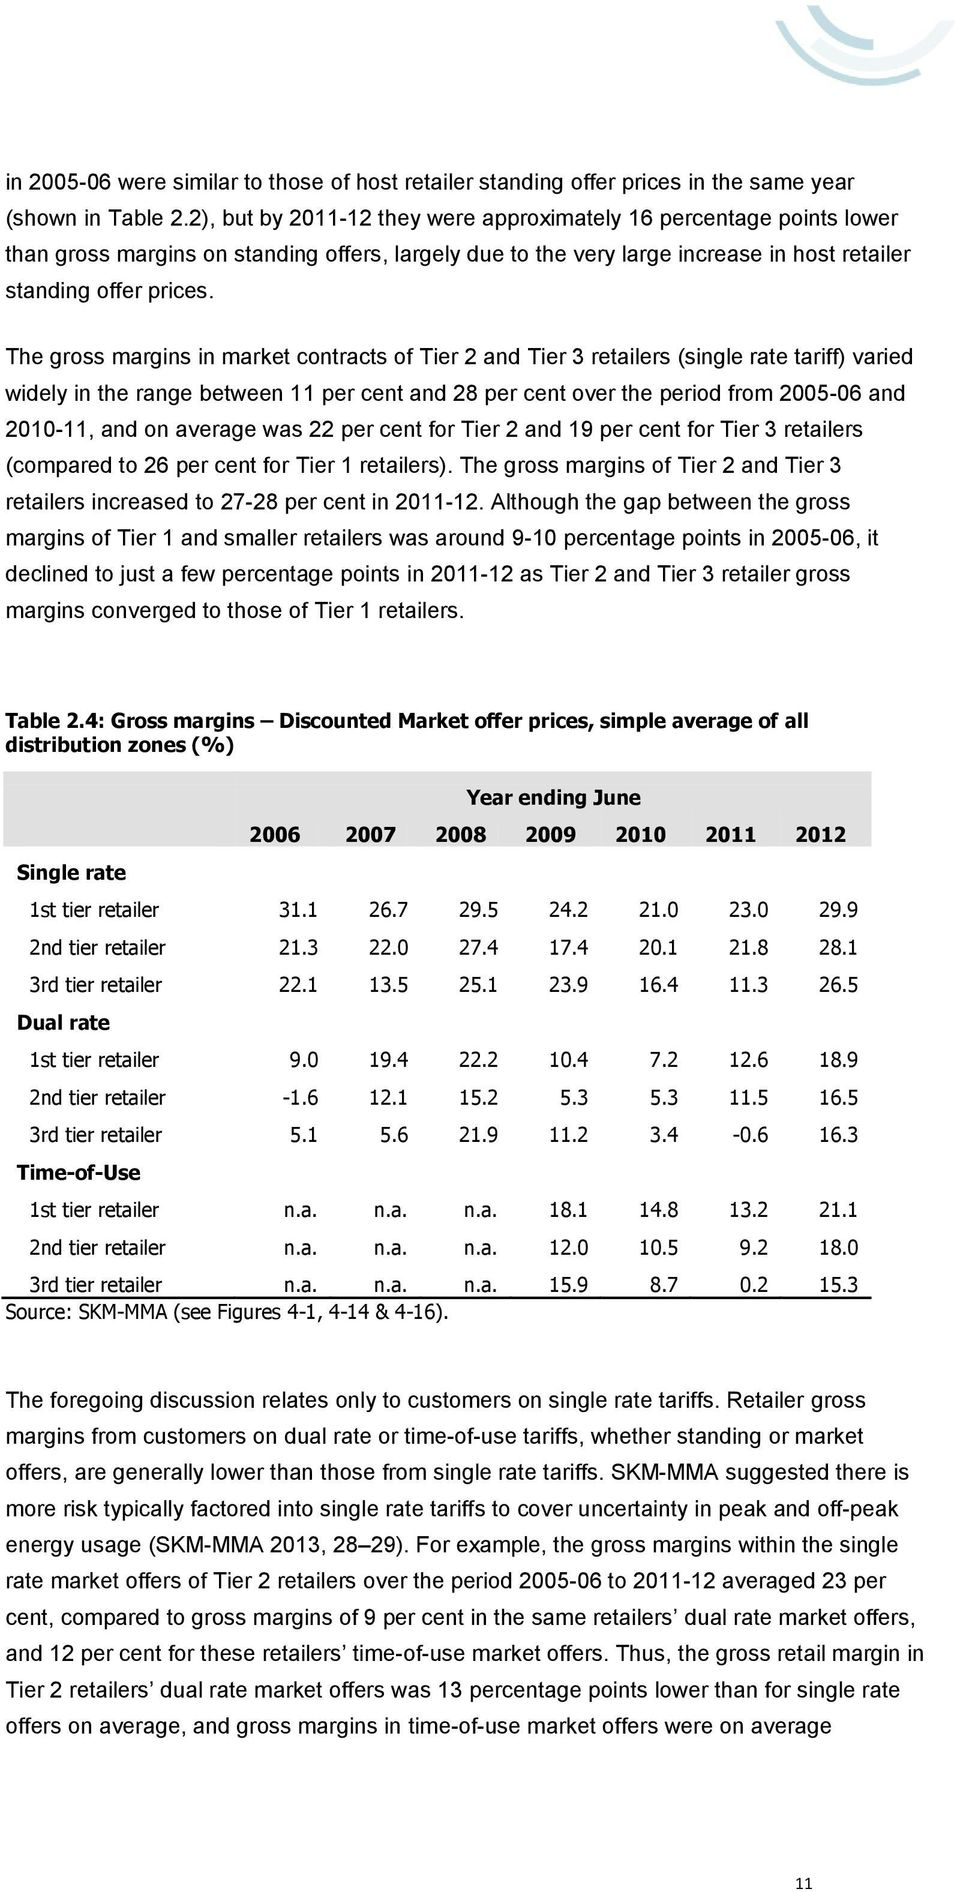 The gross margins in market contracts of Tier 2 and Tier 3 retailers (single rate tariff) varied widely in the range between 11 per cent and 28 per cent over the period from 2005-06 and 2010-11, and